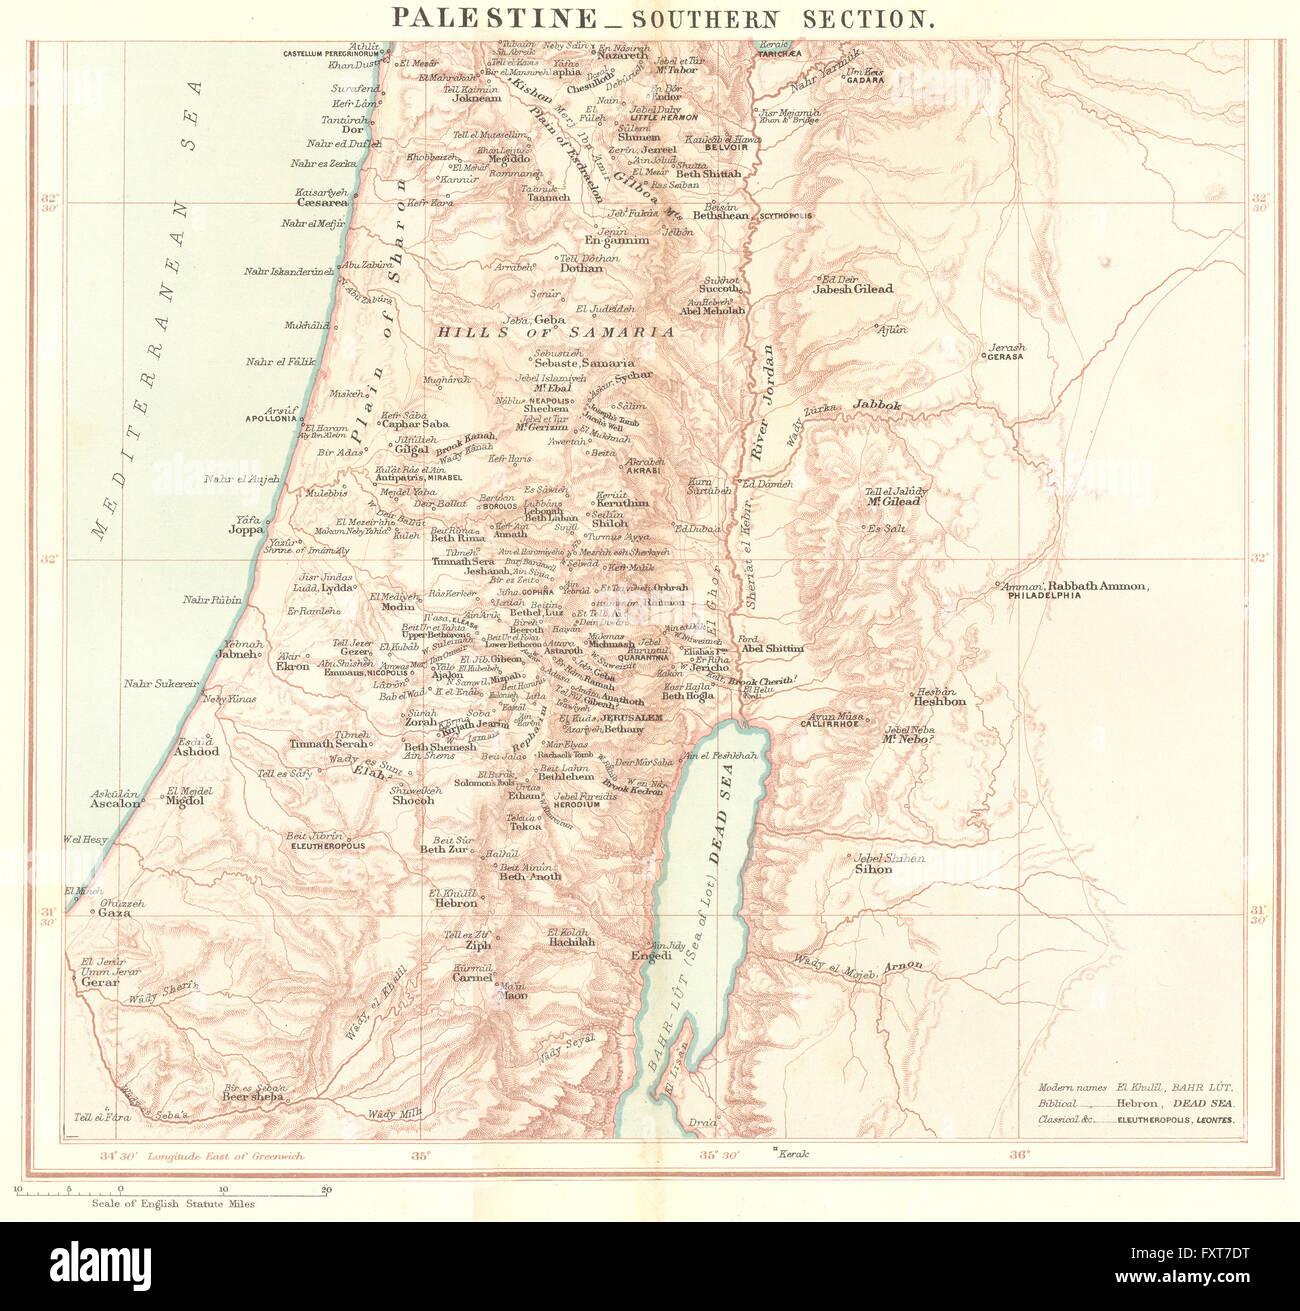 ISRAEL Palestinesouth Jordan c1885 antique map Stock Photo